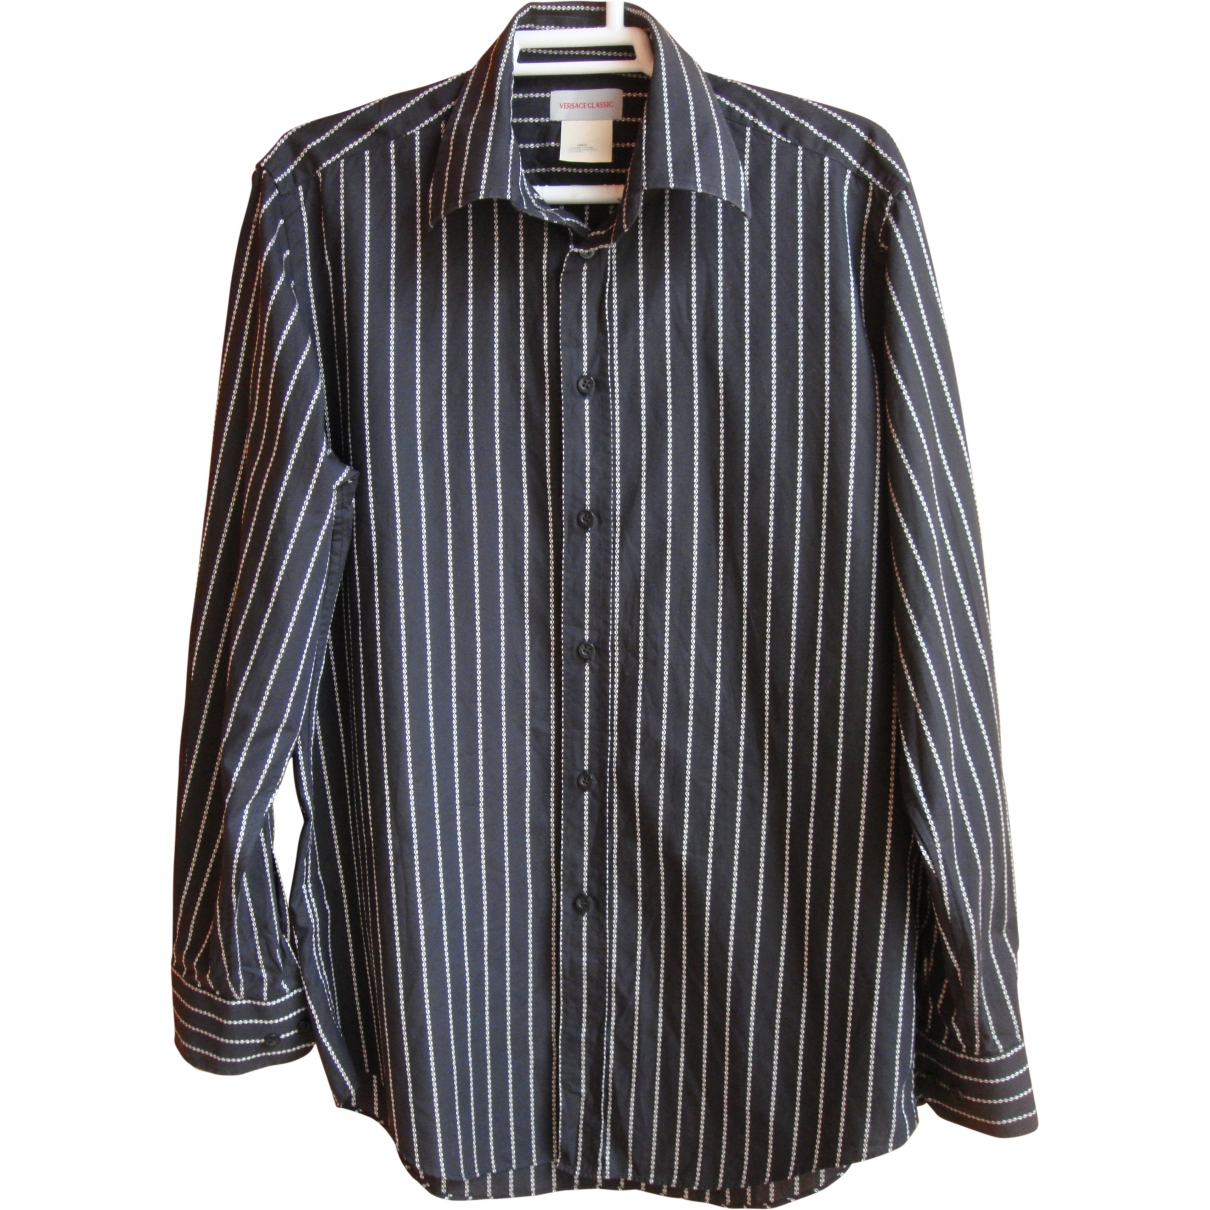 Versace \N Black Cotton Shirts for Men 40 EU (tour de cou / collar)